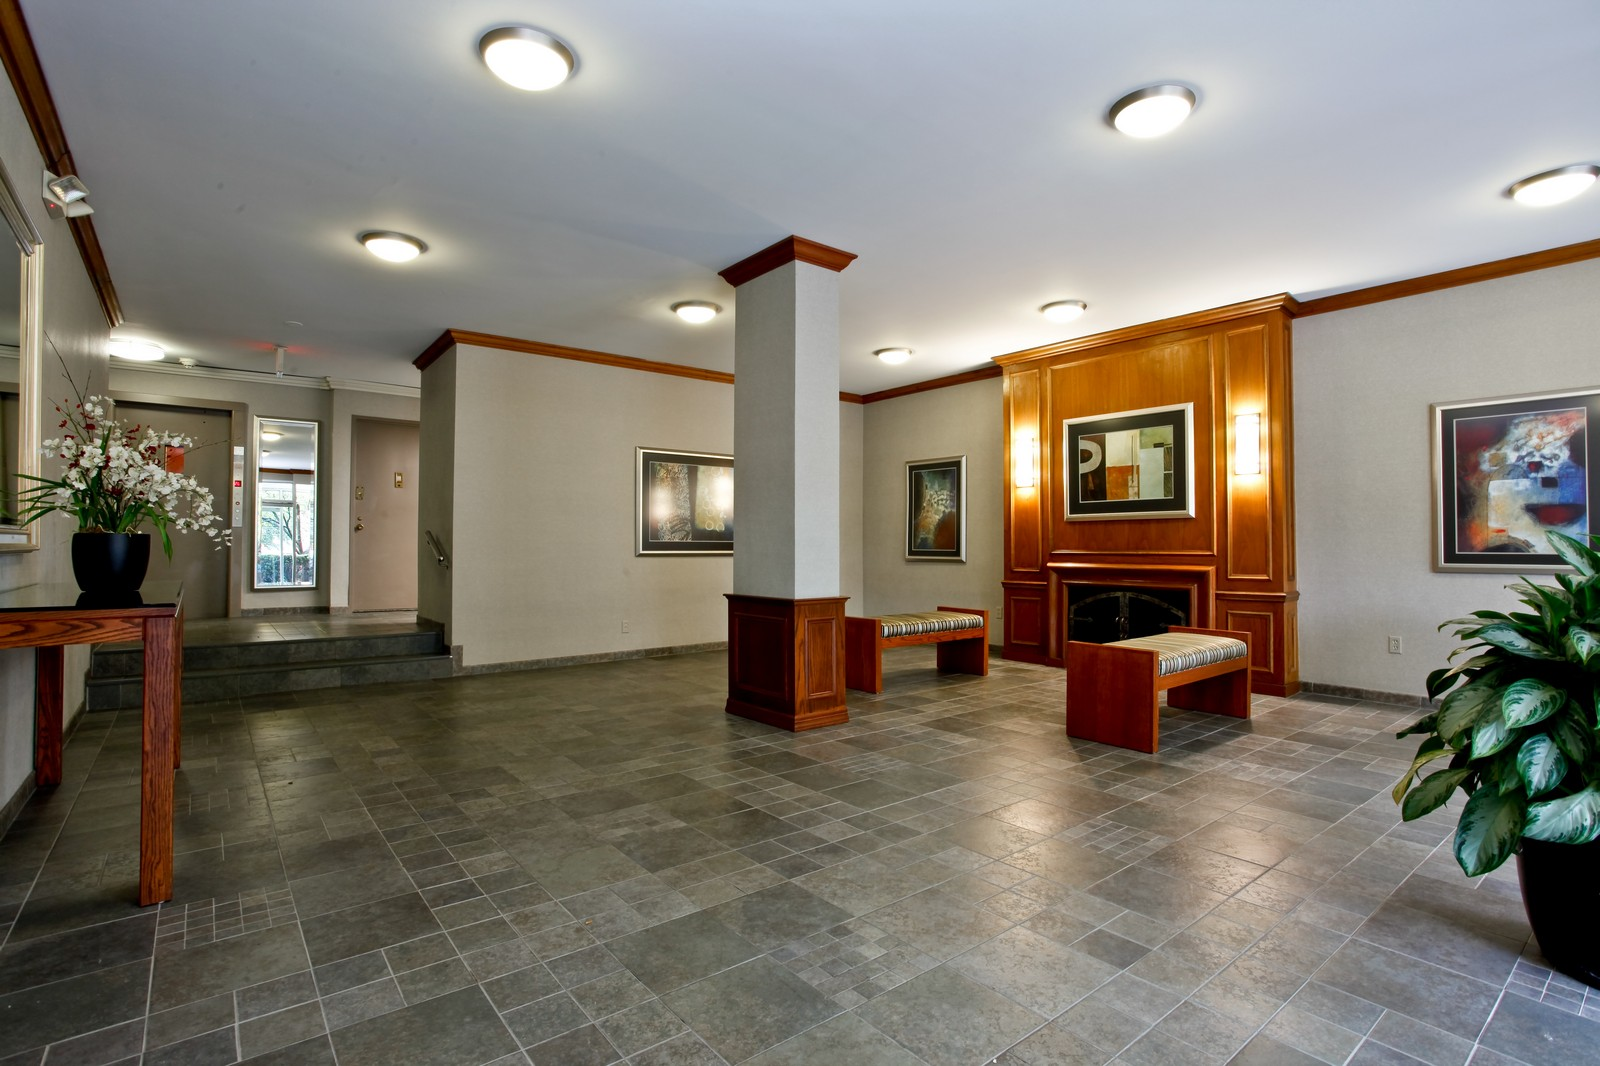 Real Estate Photography - 230 Garth Rd, Apt 2A1, Scarsdale, NY, 10583 - Lobby